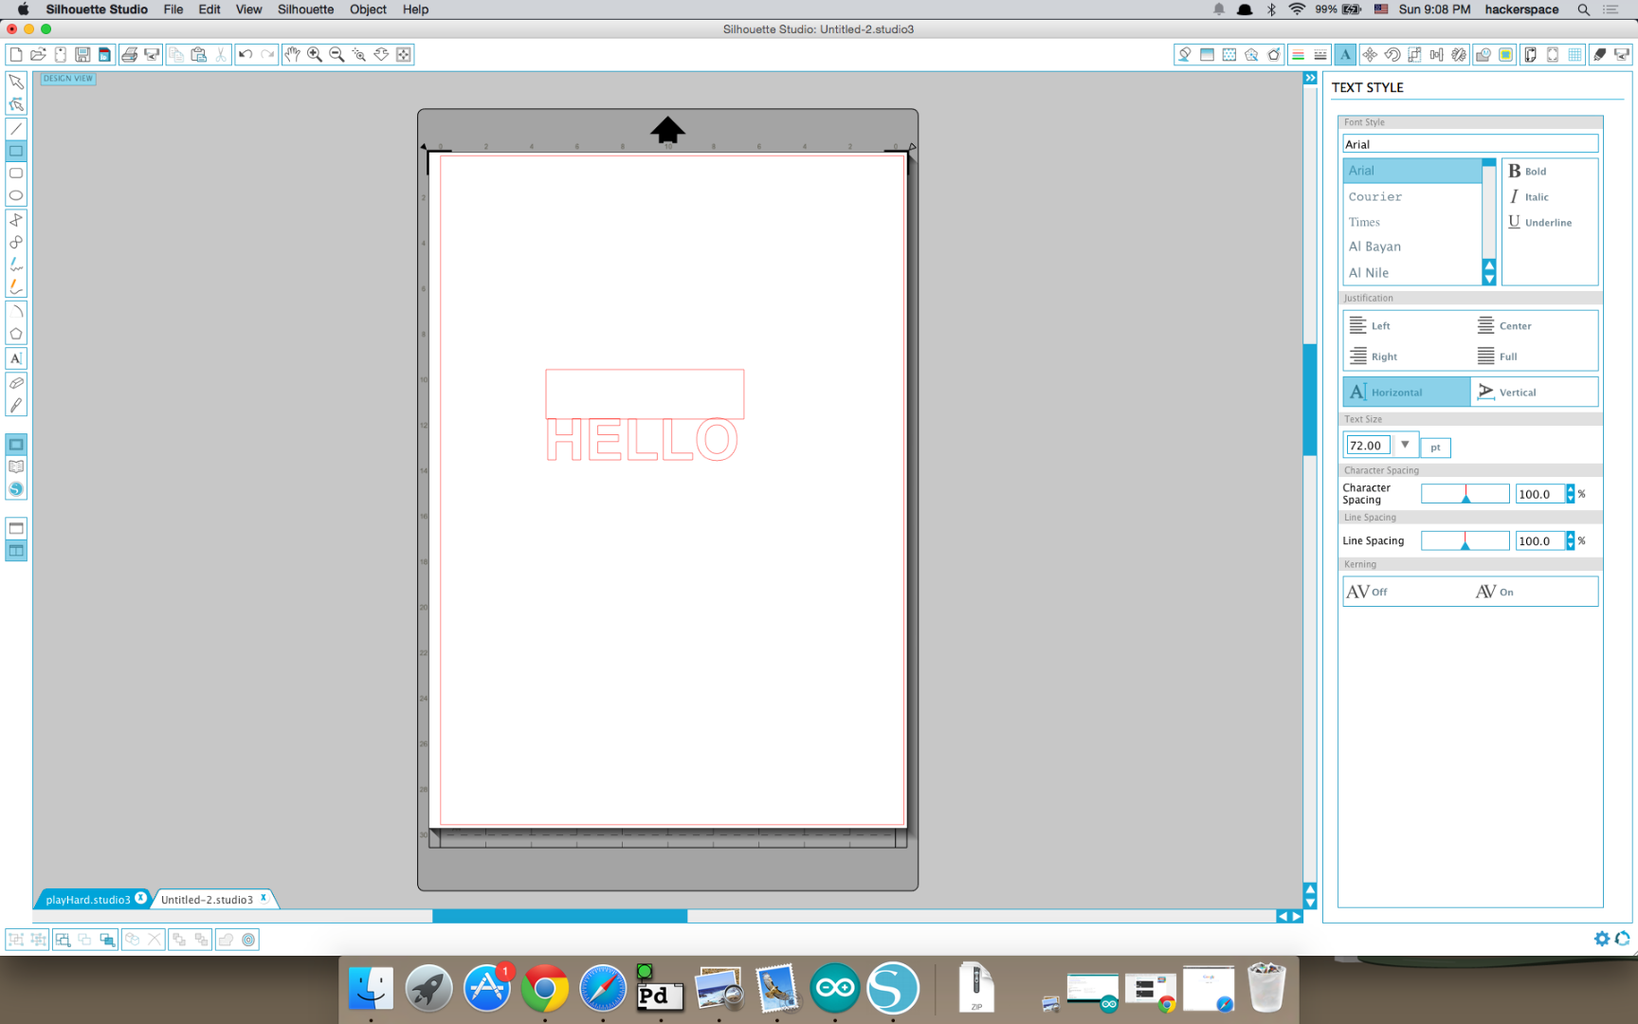 Draw a Rectangle on Top of the Text